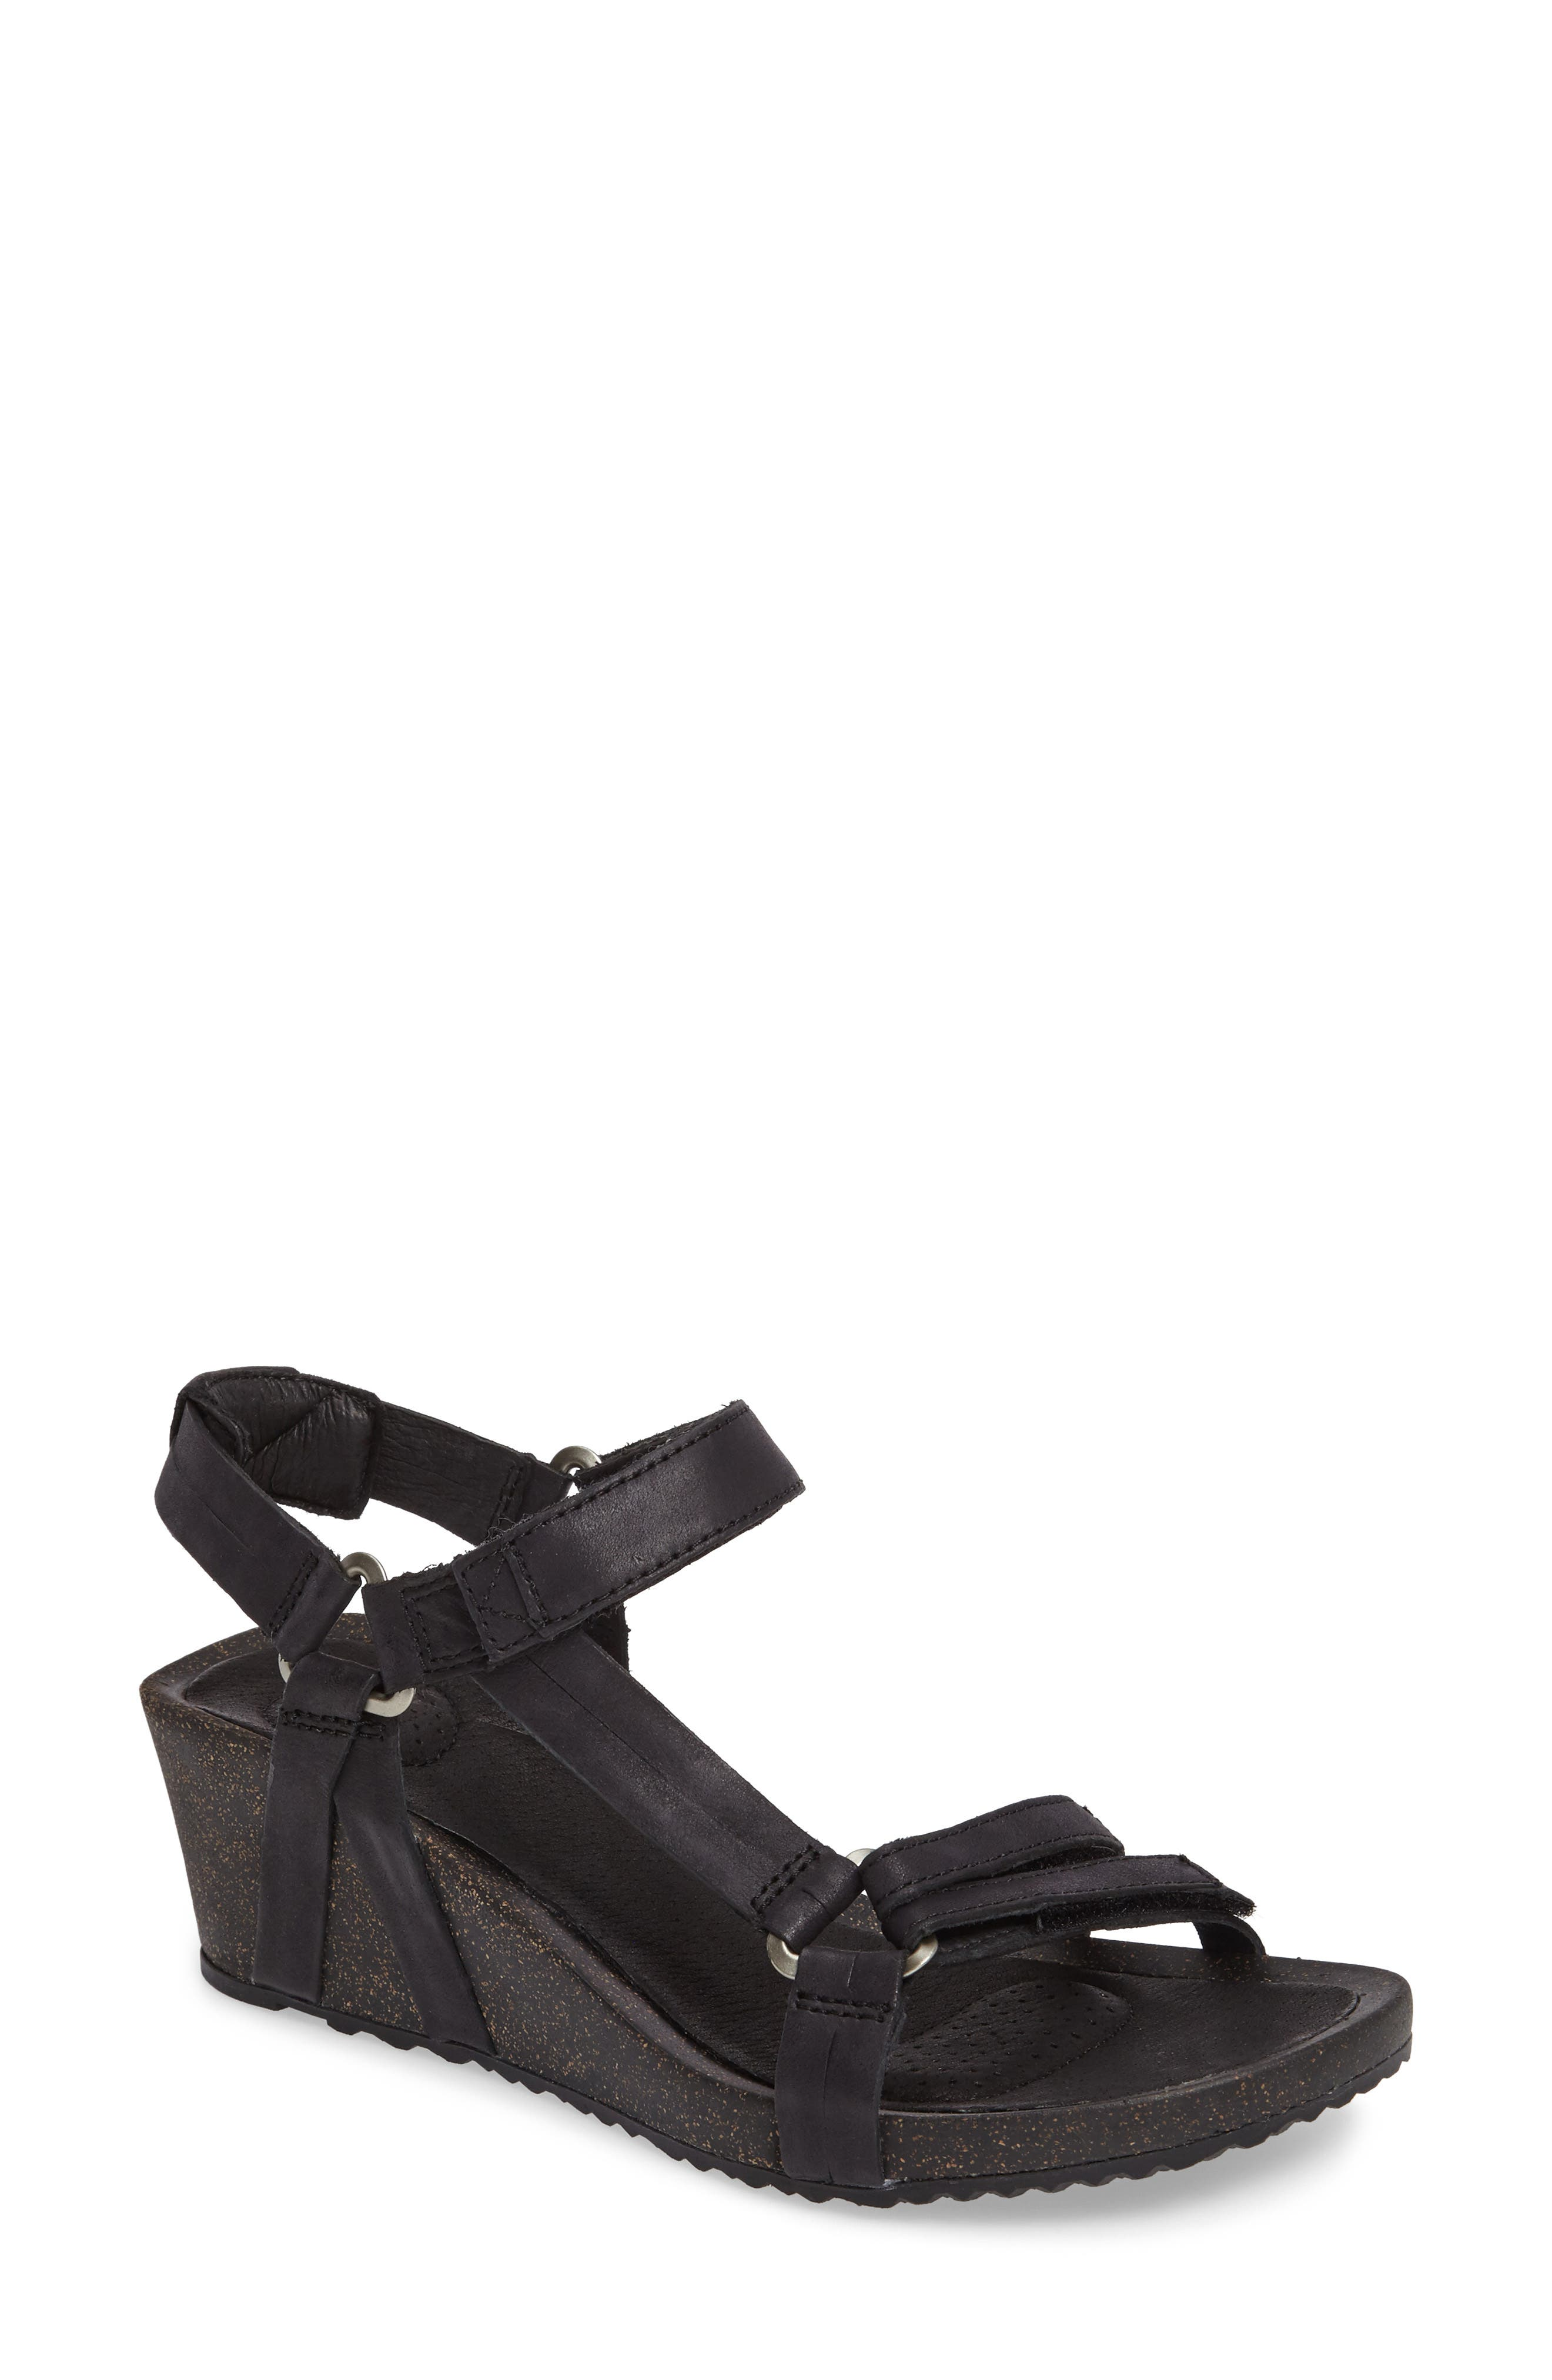 Ysidro Wedge Sandal,                         Main,                         color, 002